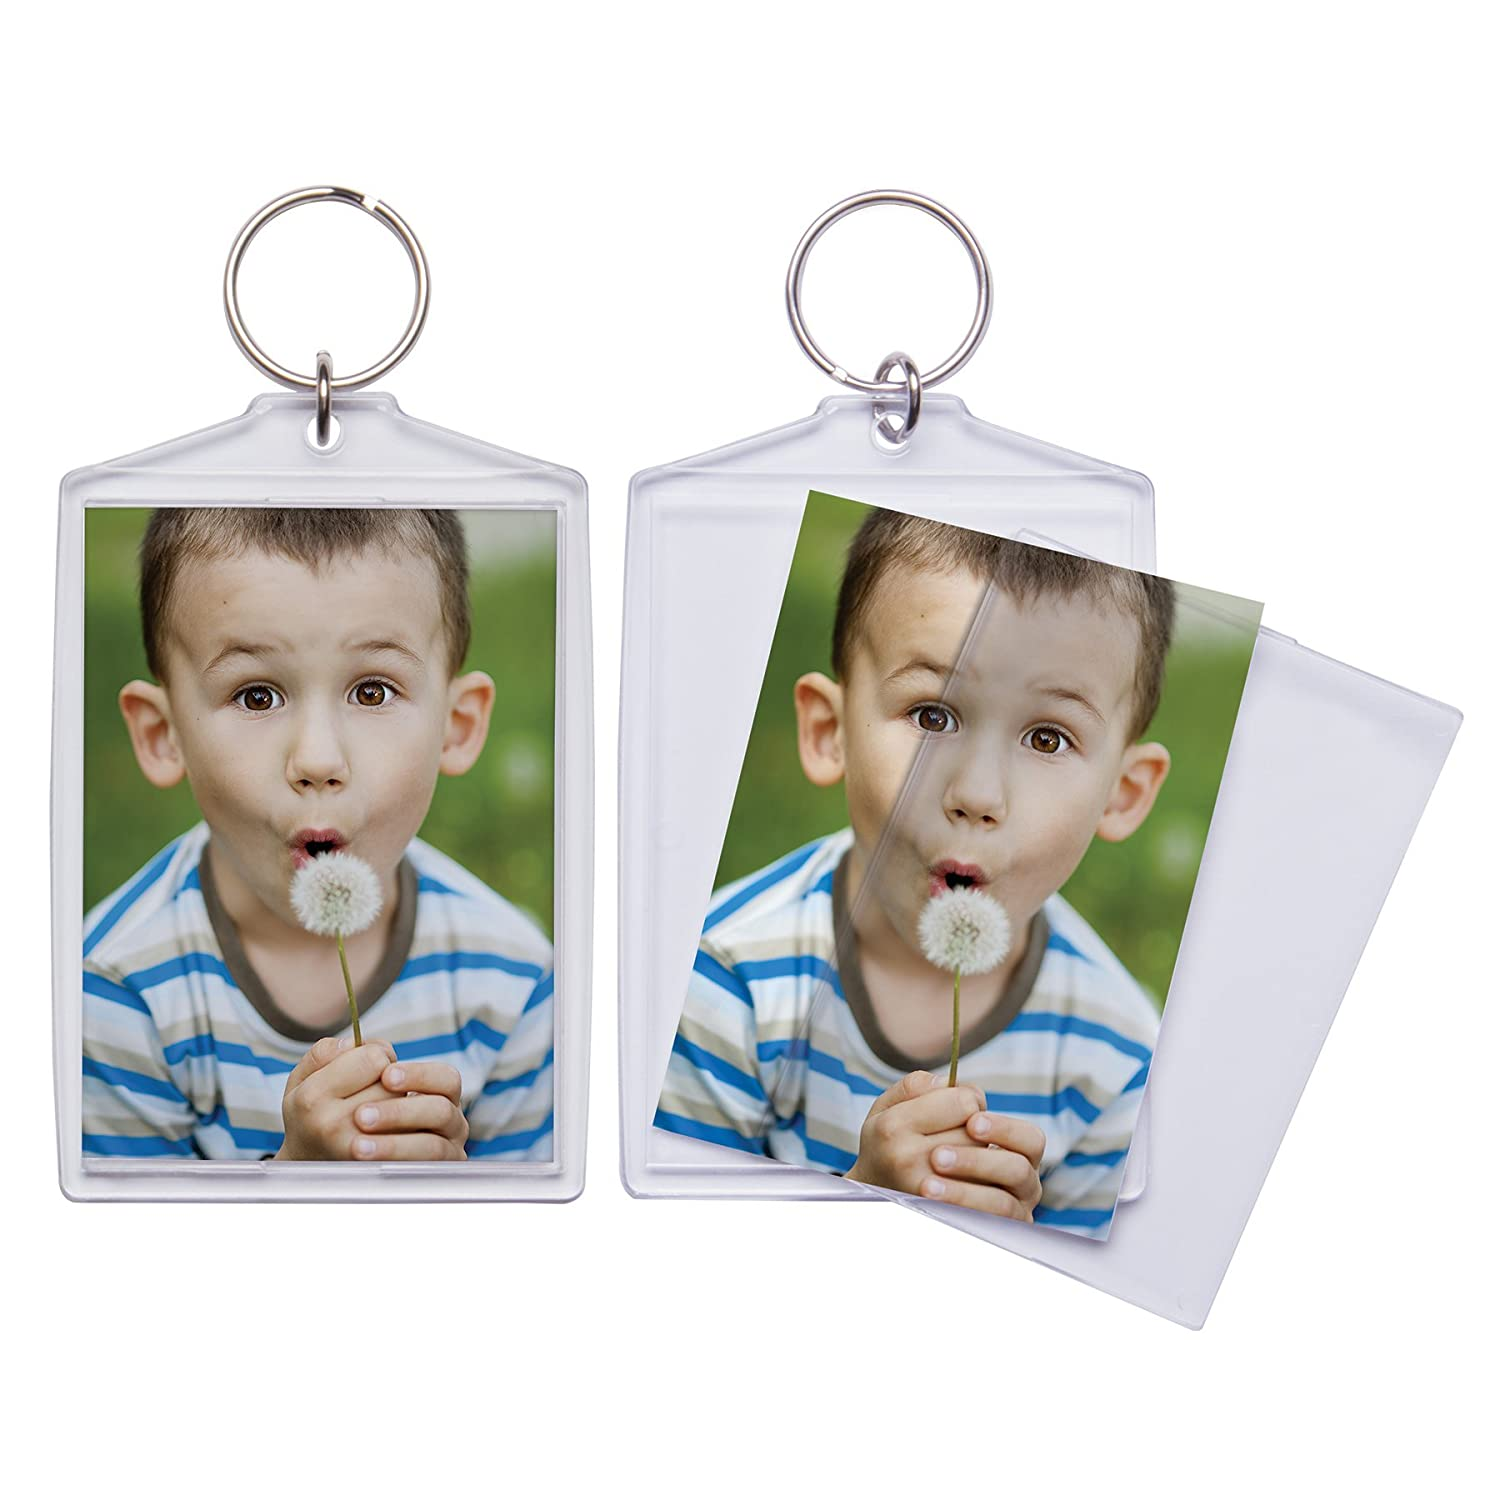 Amazon 25 x 35 jumbo acrylic snap in photo keychains amazon 25 x 35 jumbo acrylic snap in photo keychains pack of 36 jeuxipadfo Choice Image